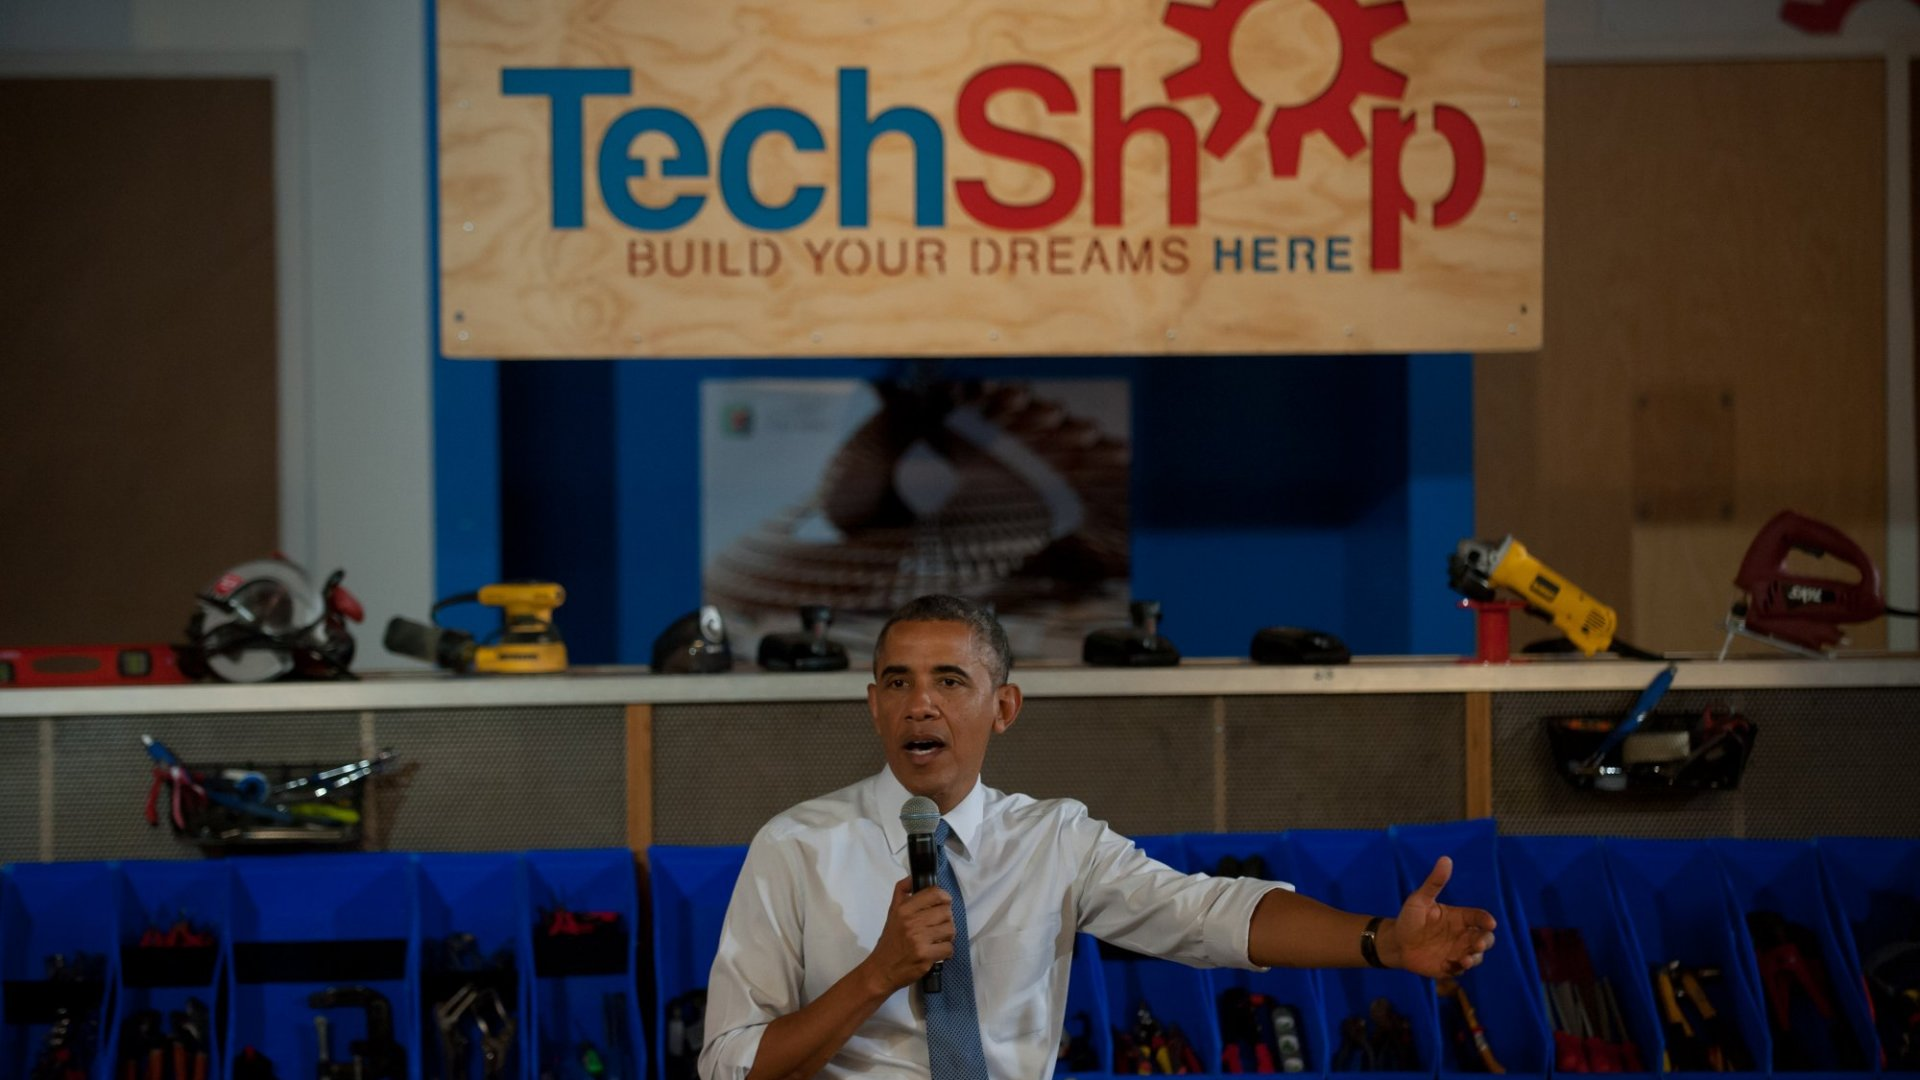 U.S. President Barack Obama speaks to a crowd at TechShop Pittsburgh about technology, innovation and entrepreneurship in manufacturing in Pittsburgh.